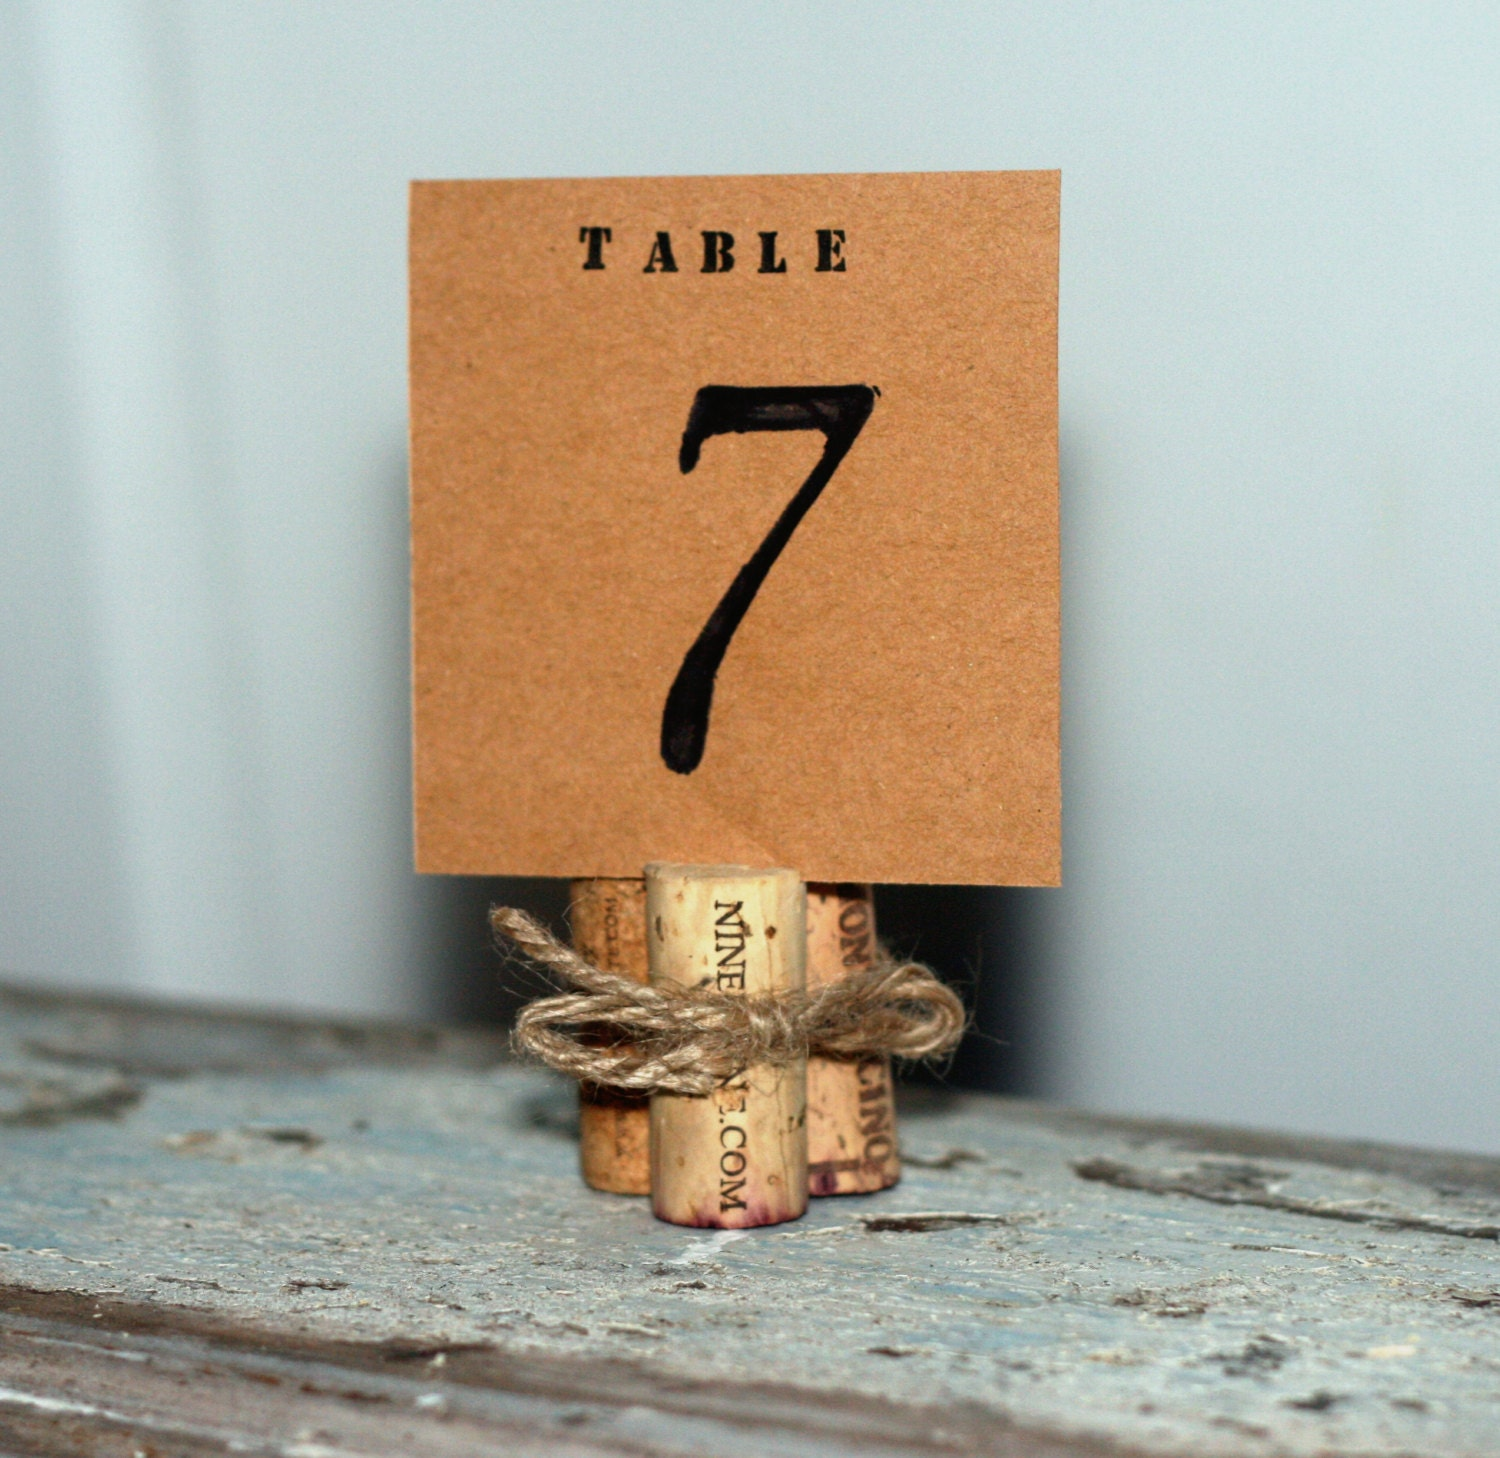 Wine Cork Table Numbers: Wine Corks Table Number Markers/Holders By AppalachianArtisans